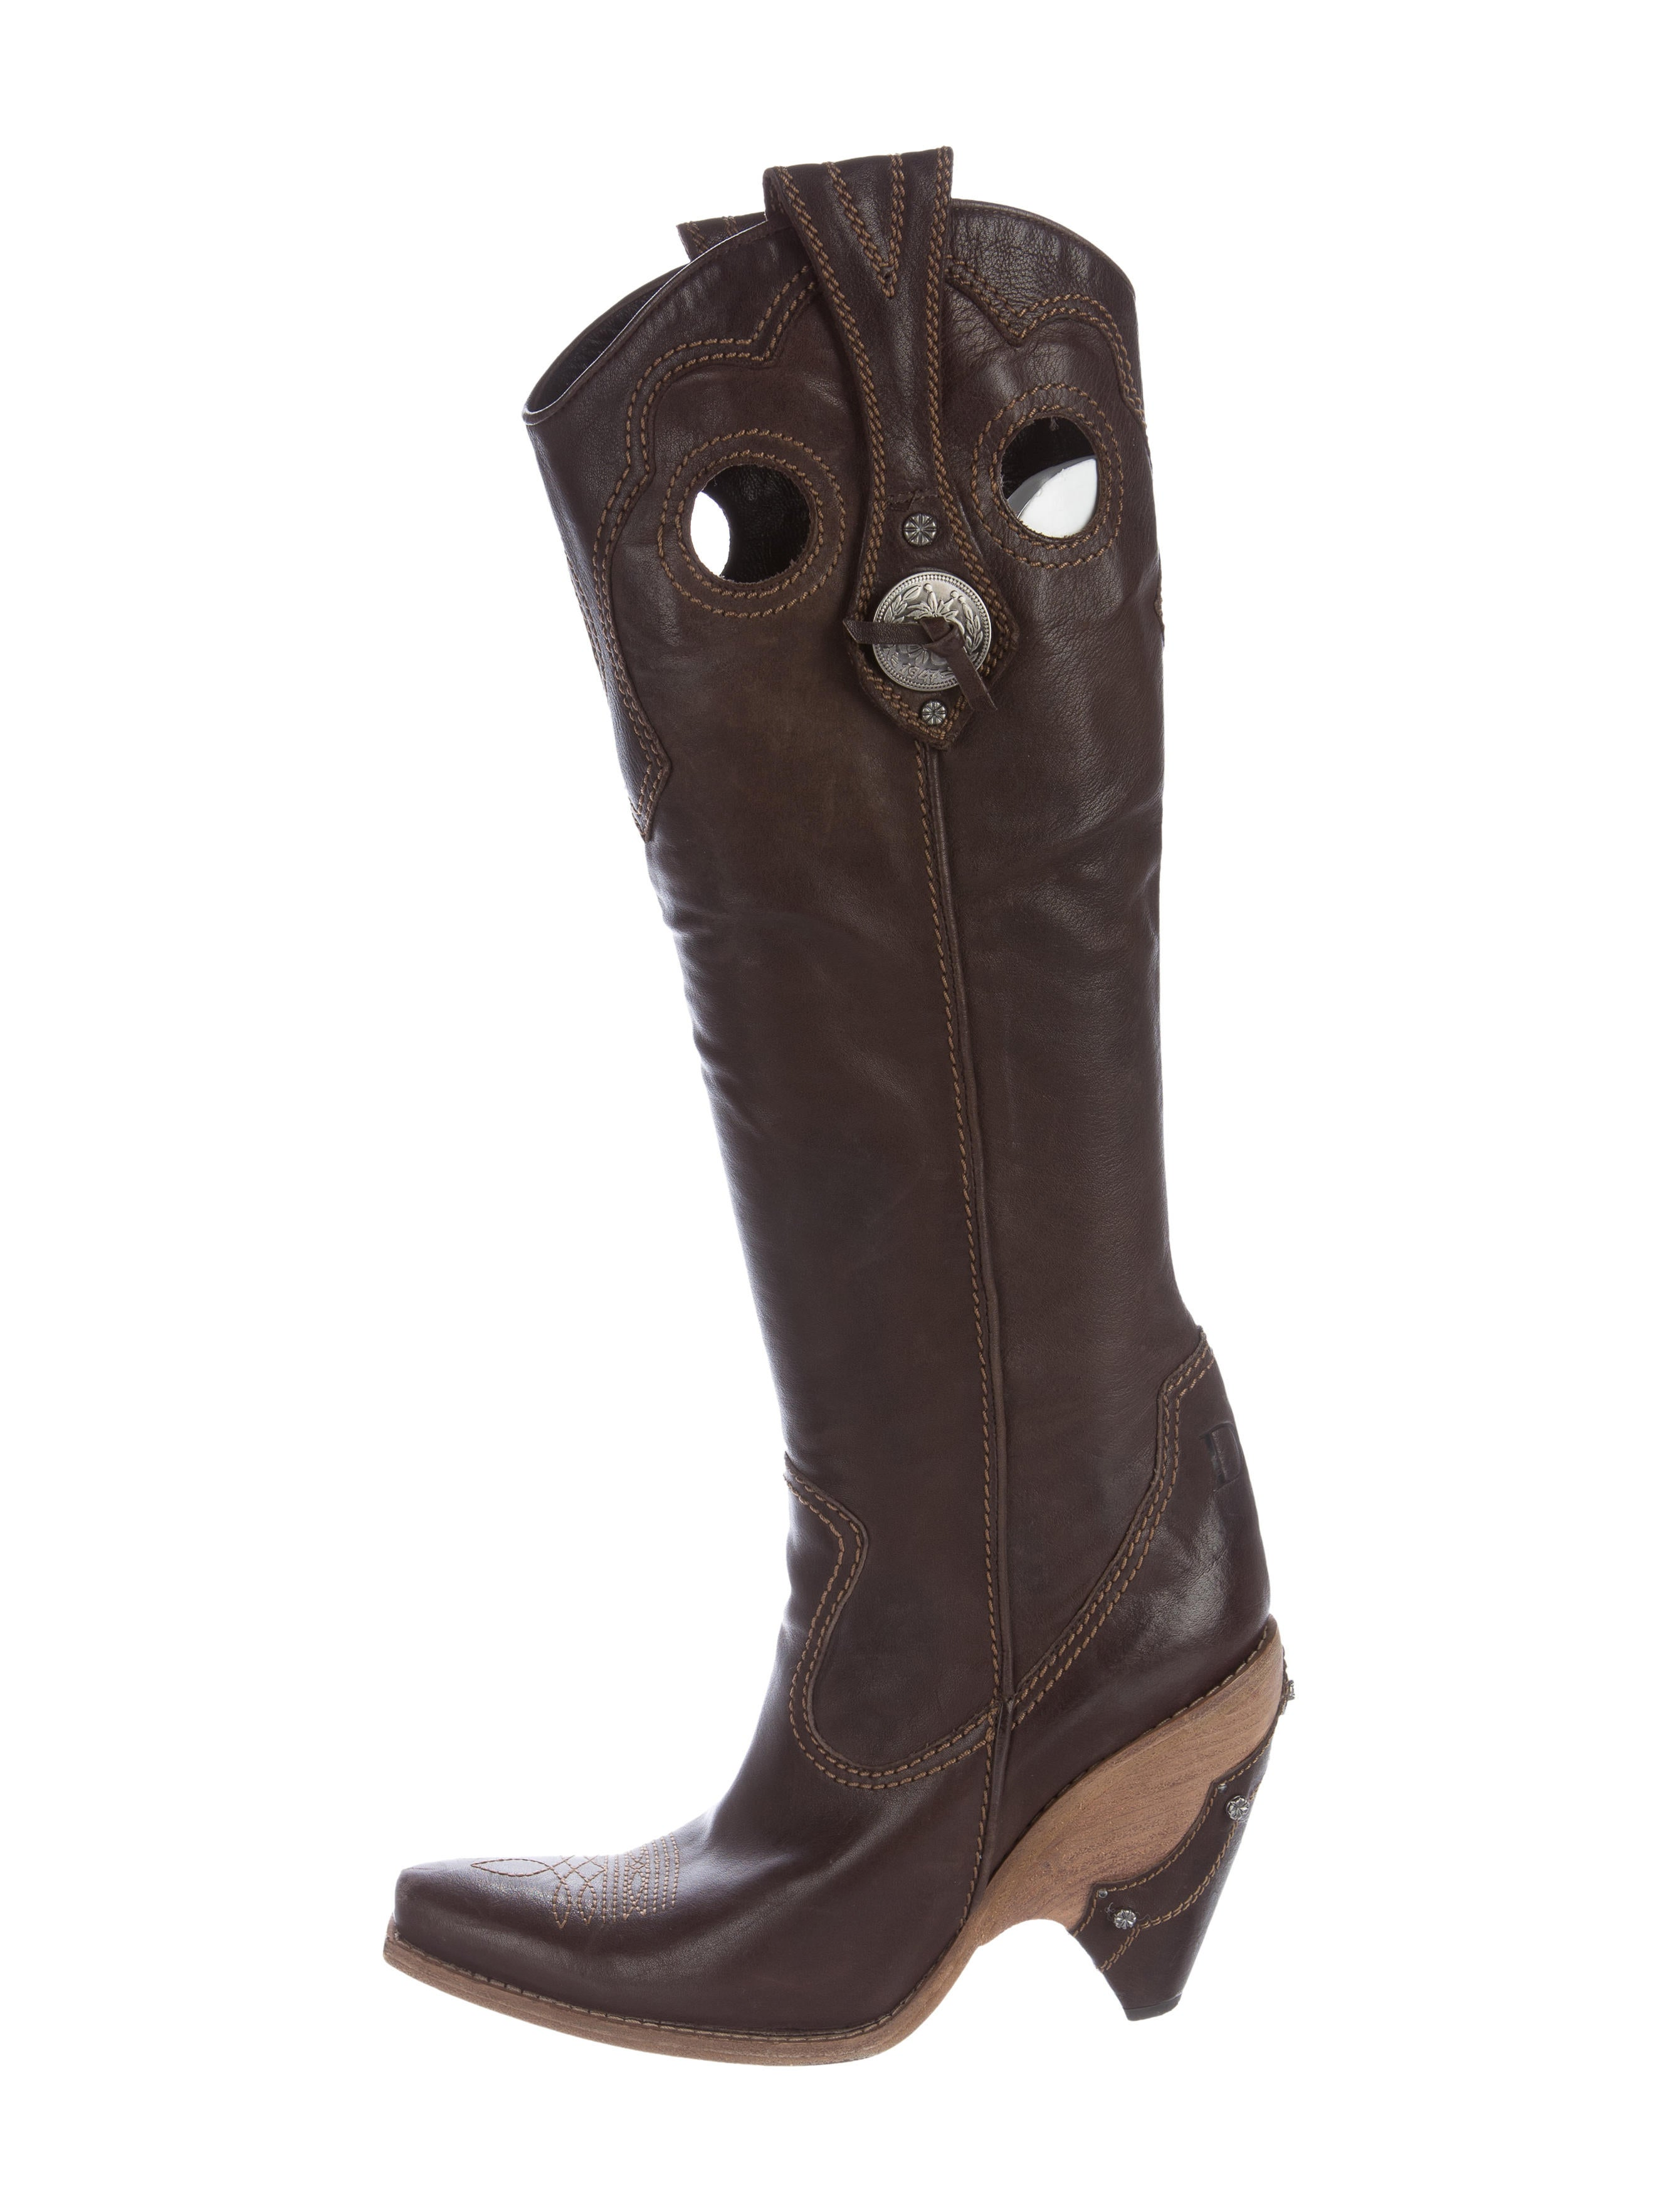 christian knee high cowboy boots shoes chr53280